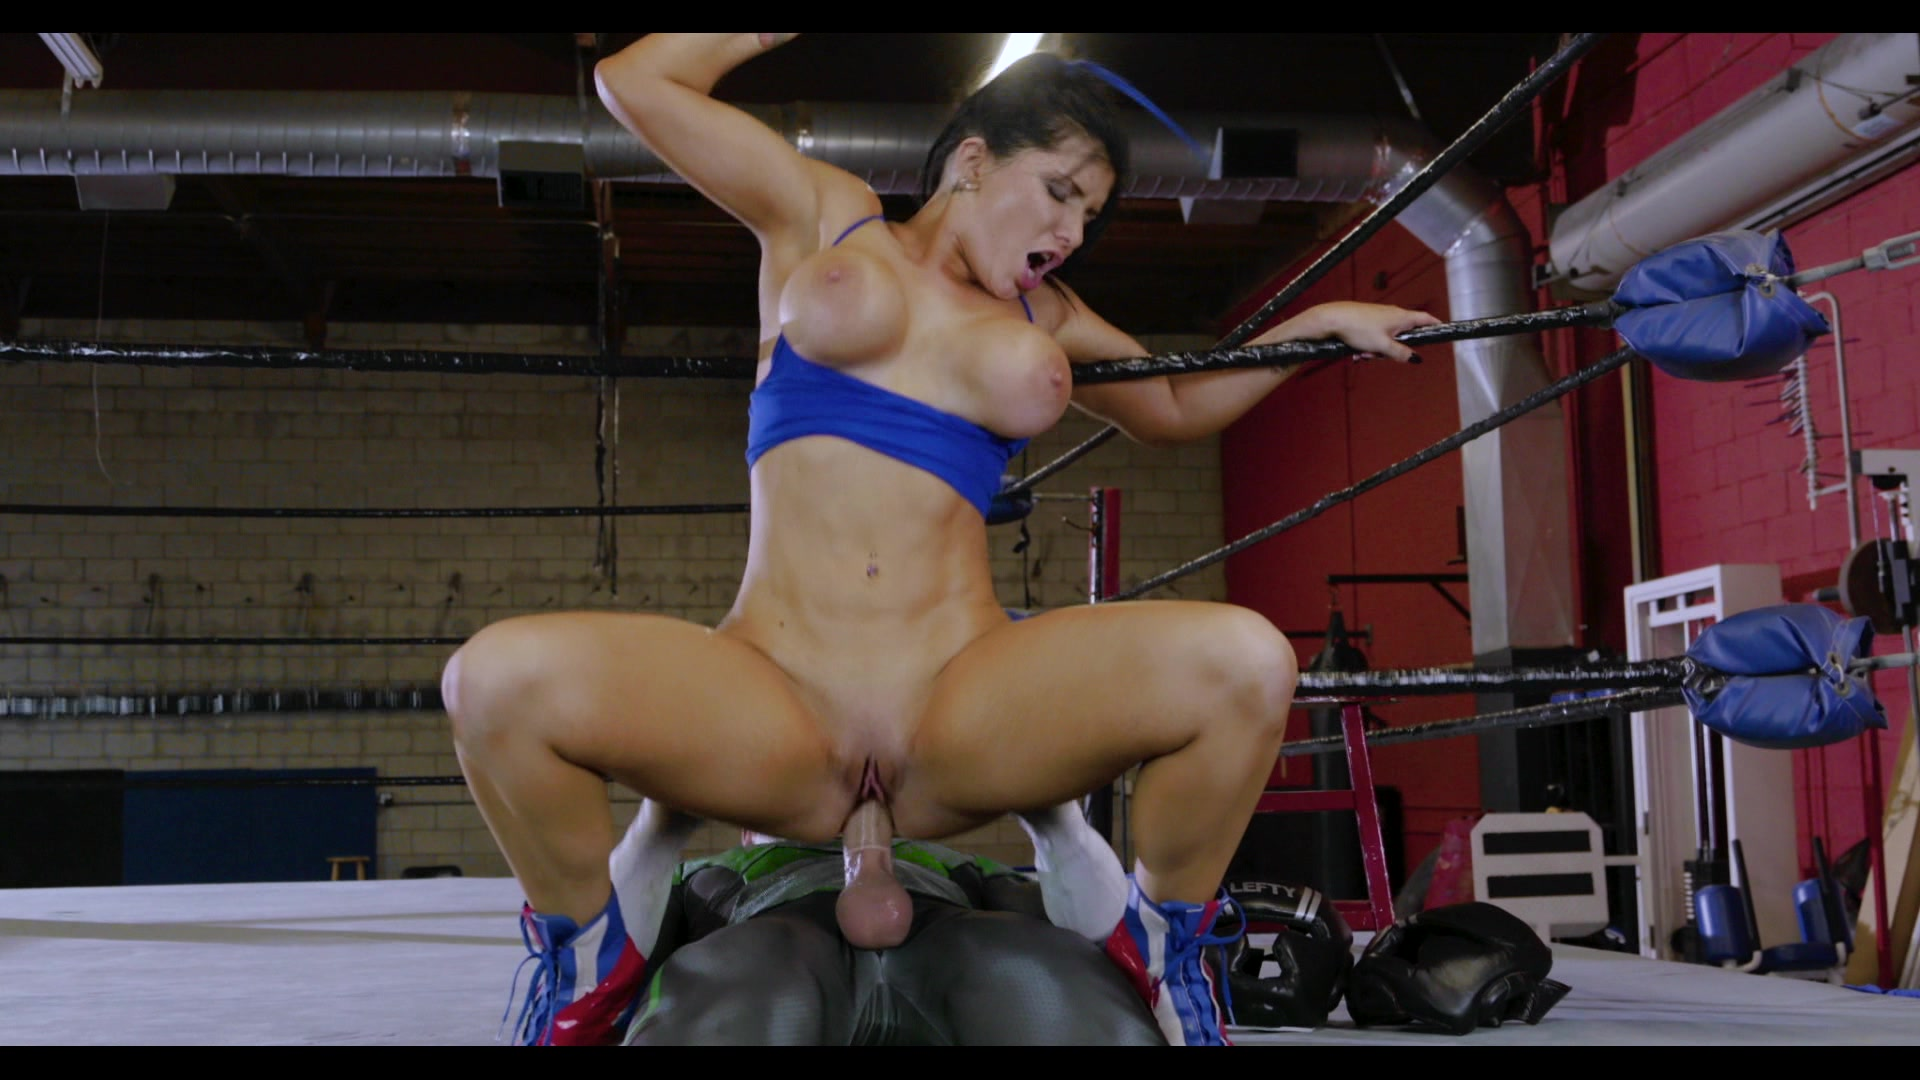 Scene with Xander Corvus and Romi Rain - image 19 out of 20